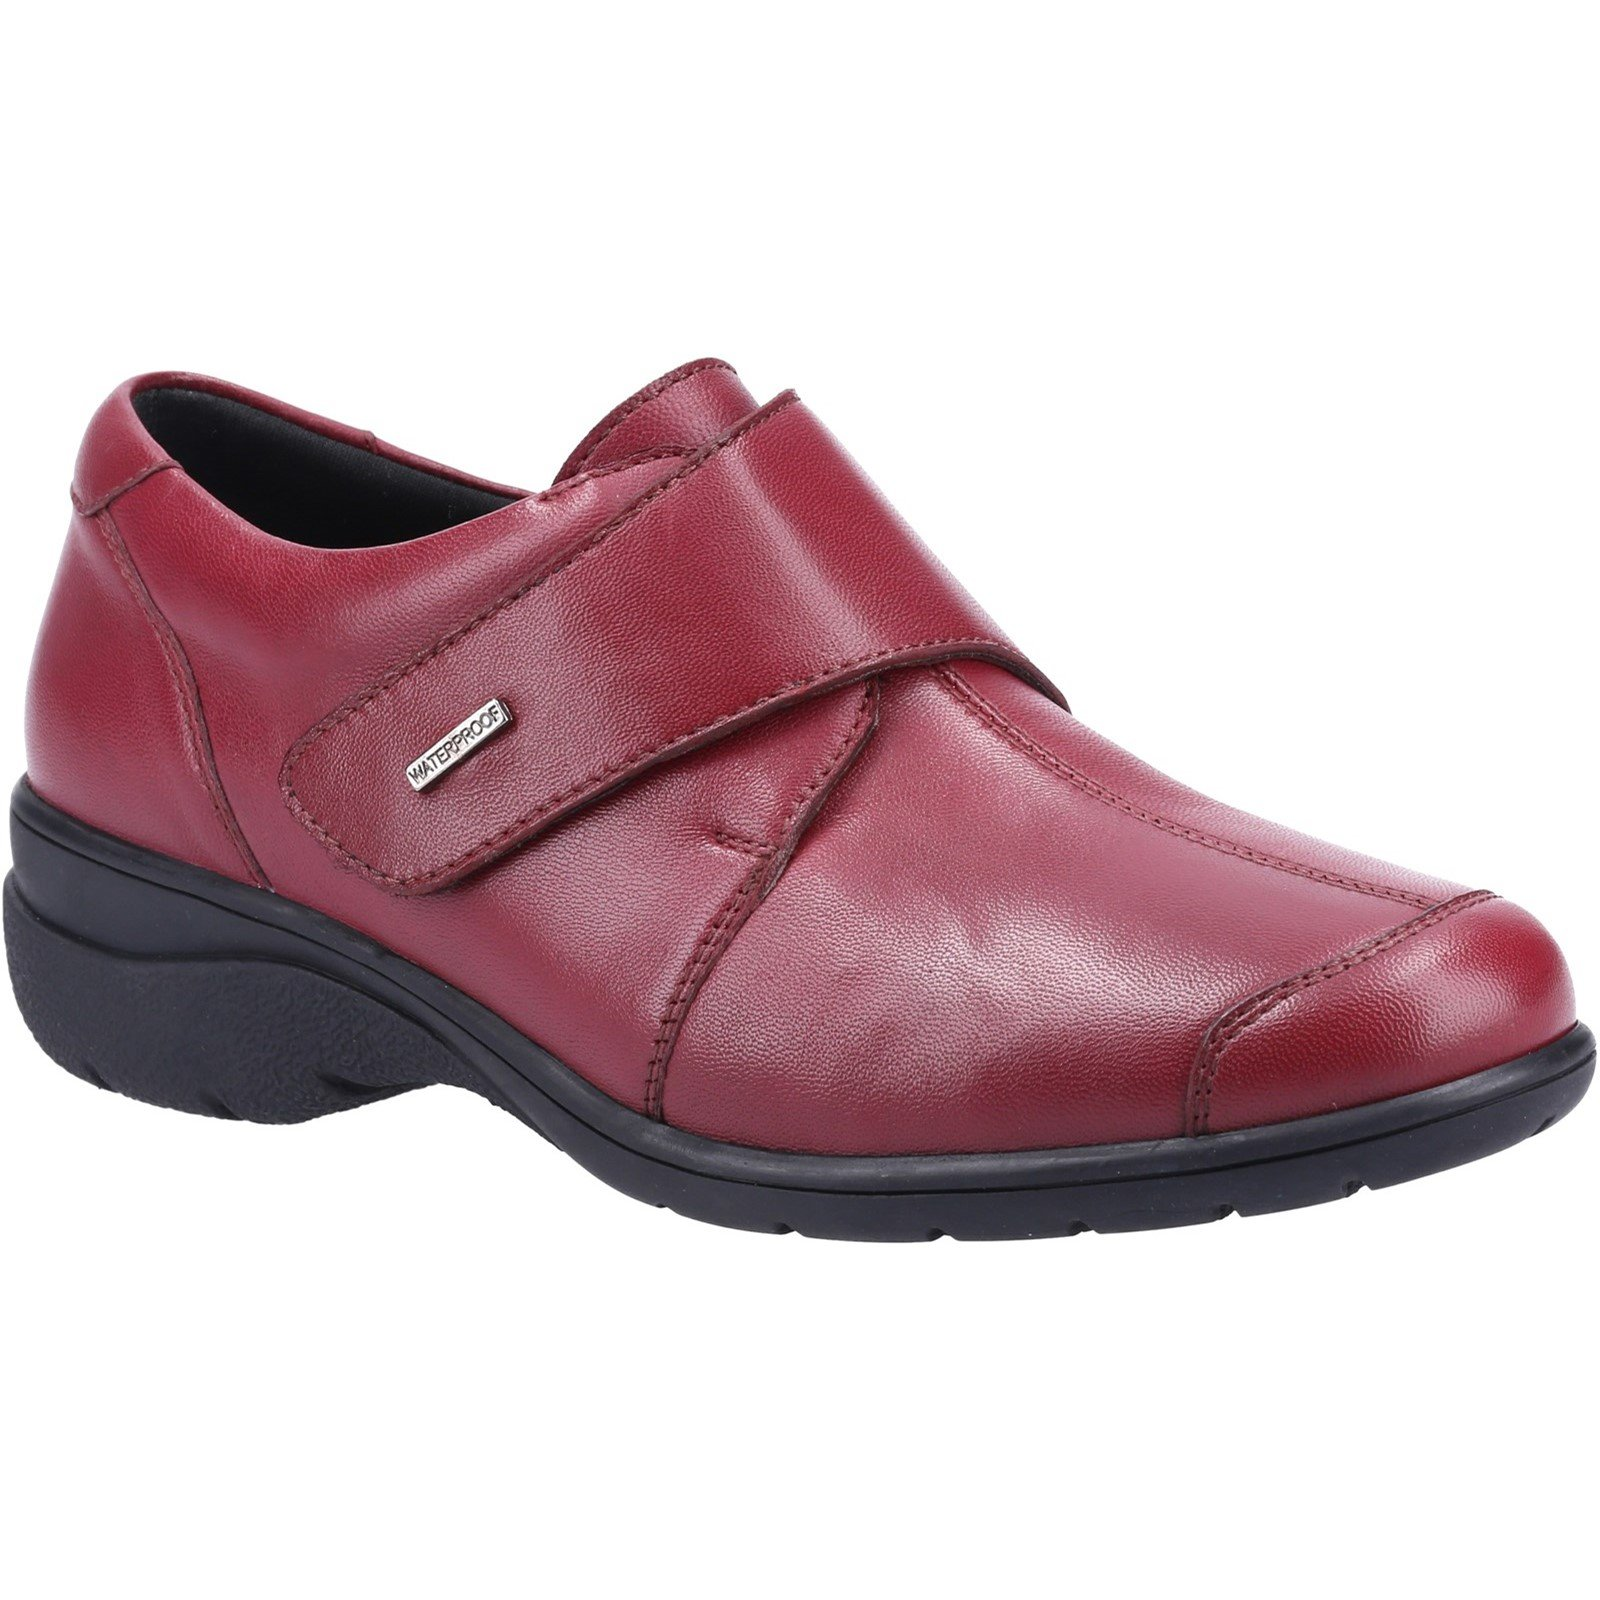 Cotswold Women's Cranham Touch Fastening Trainer Various Colours 32980 - Red 3